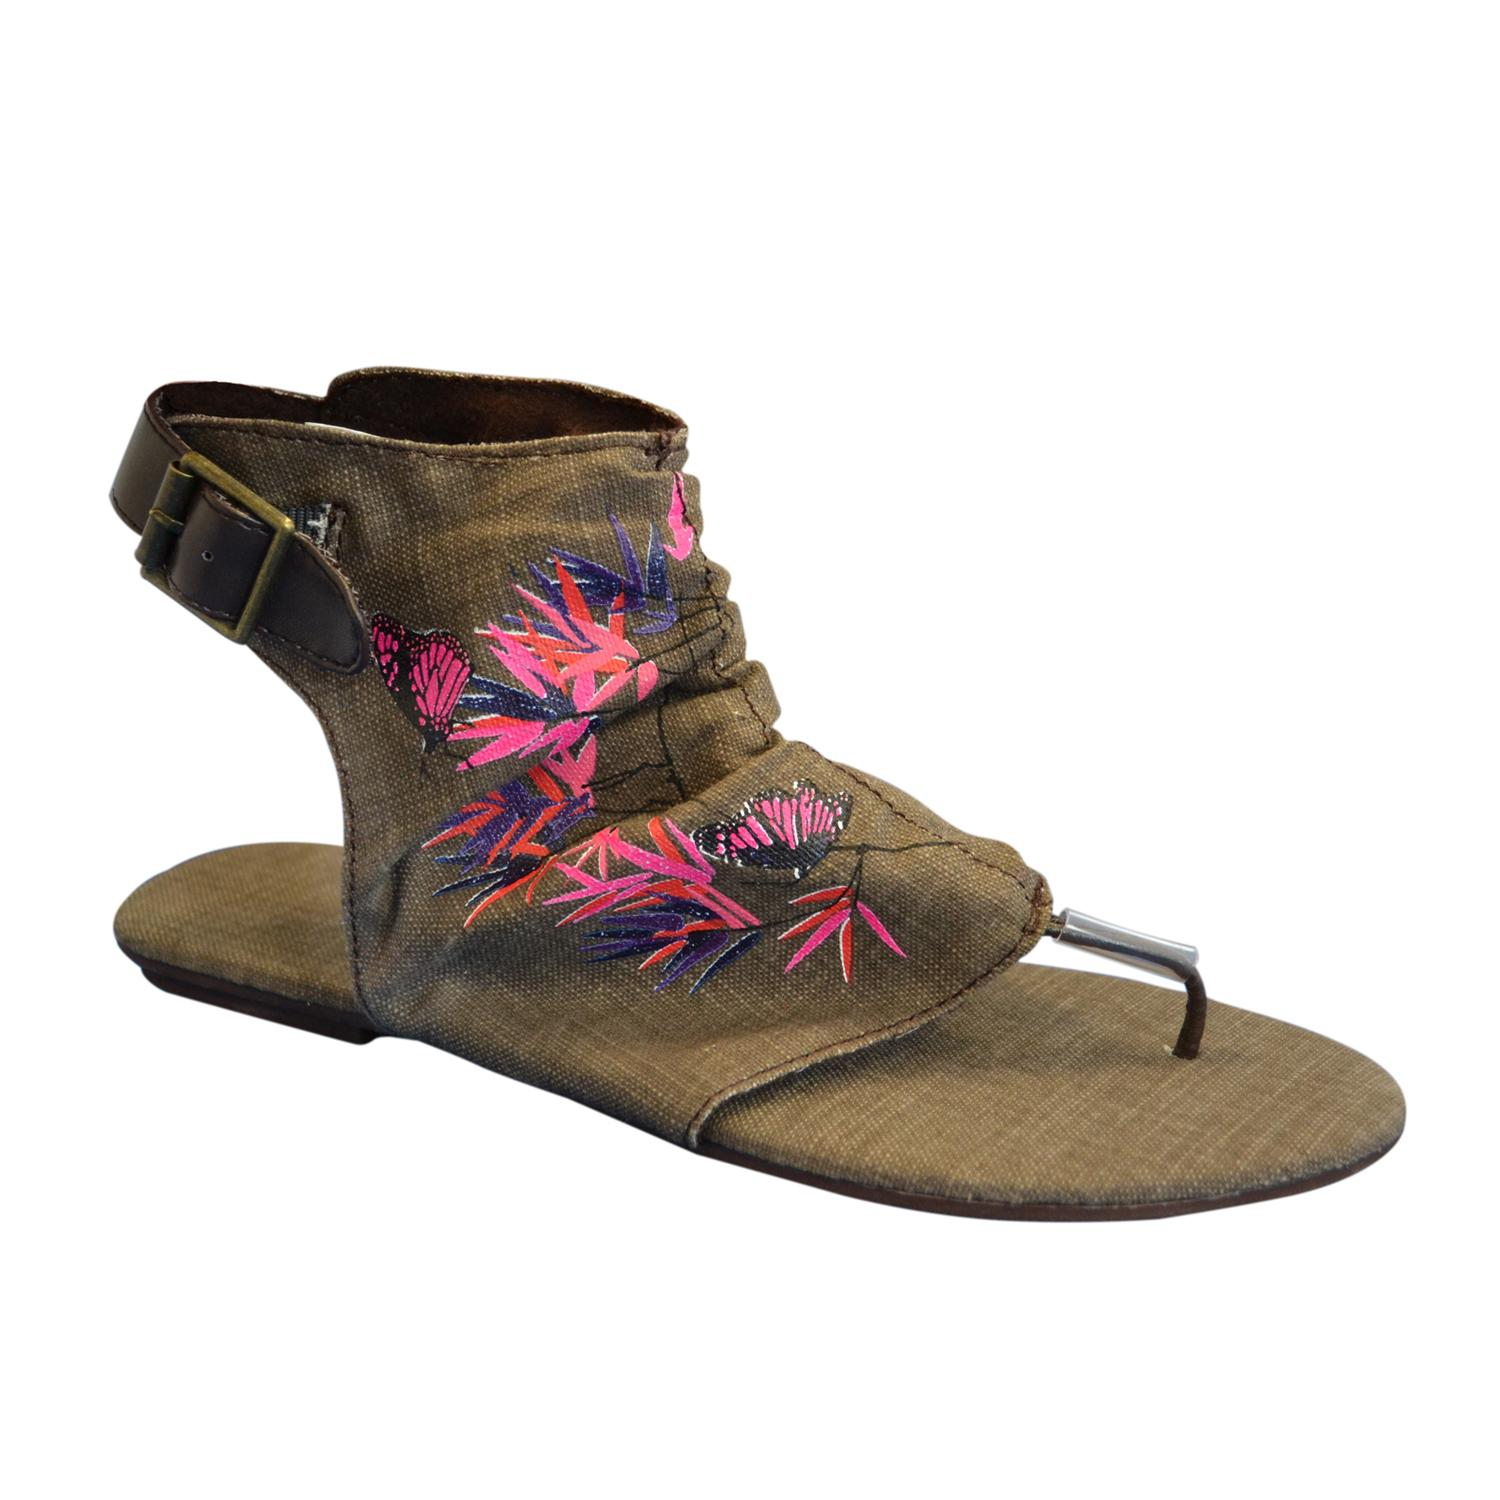 Muk Luks Women's Chocolate Sun Luks Printed Canvas Cut-out Scrunched Gladiator Sandals